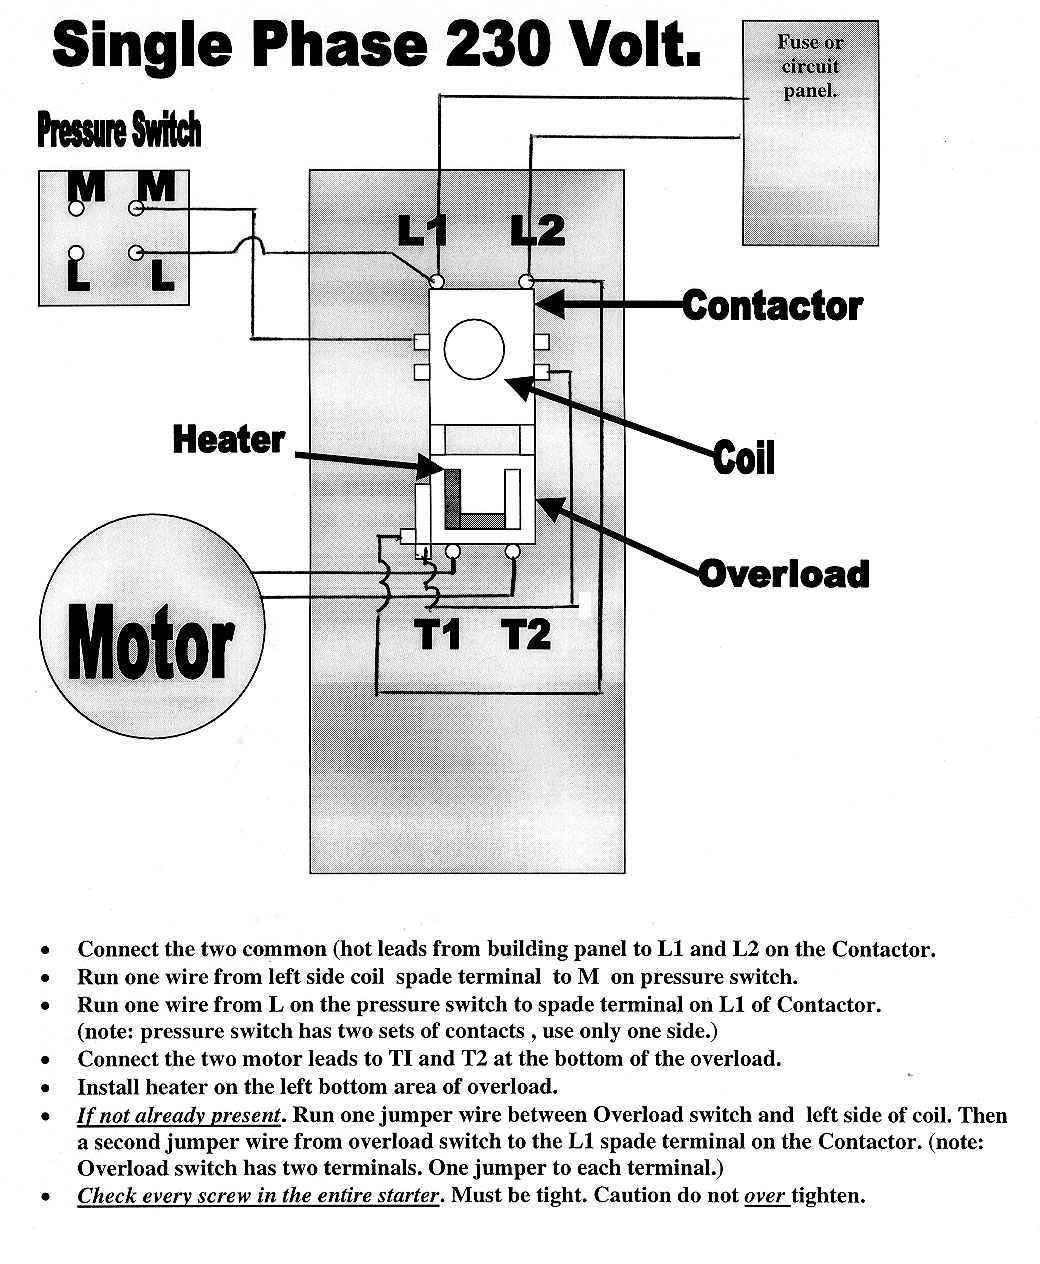 Allen Bradley Centerline Wiring Diagram Weg Motor Starter Wiring Diagram Motors Best Phase Two Speed Square D Motor Control E on allen bradley motor starter bucket